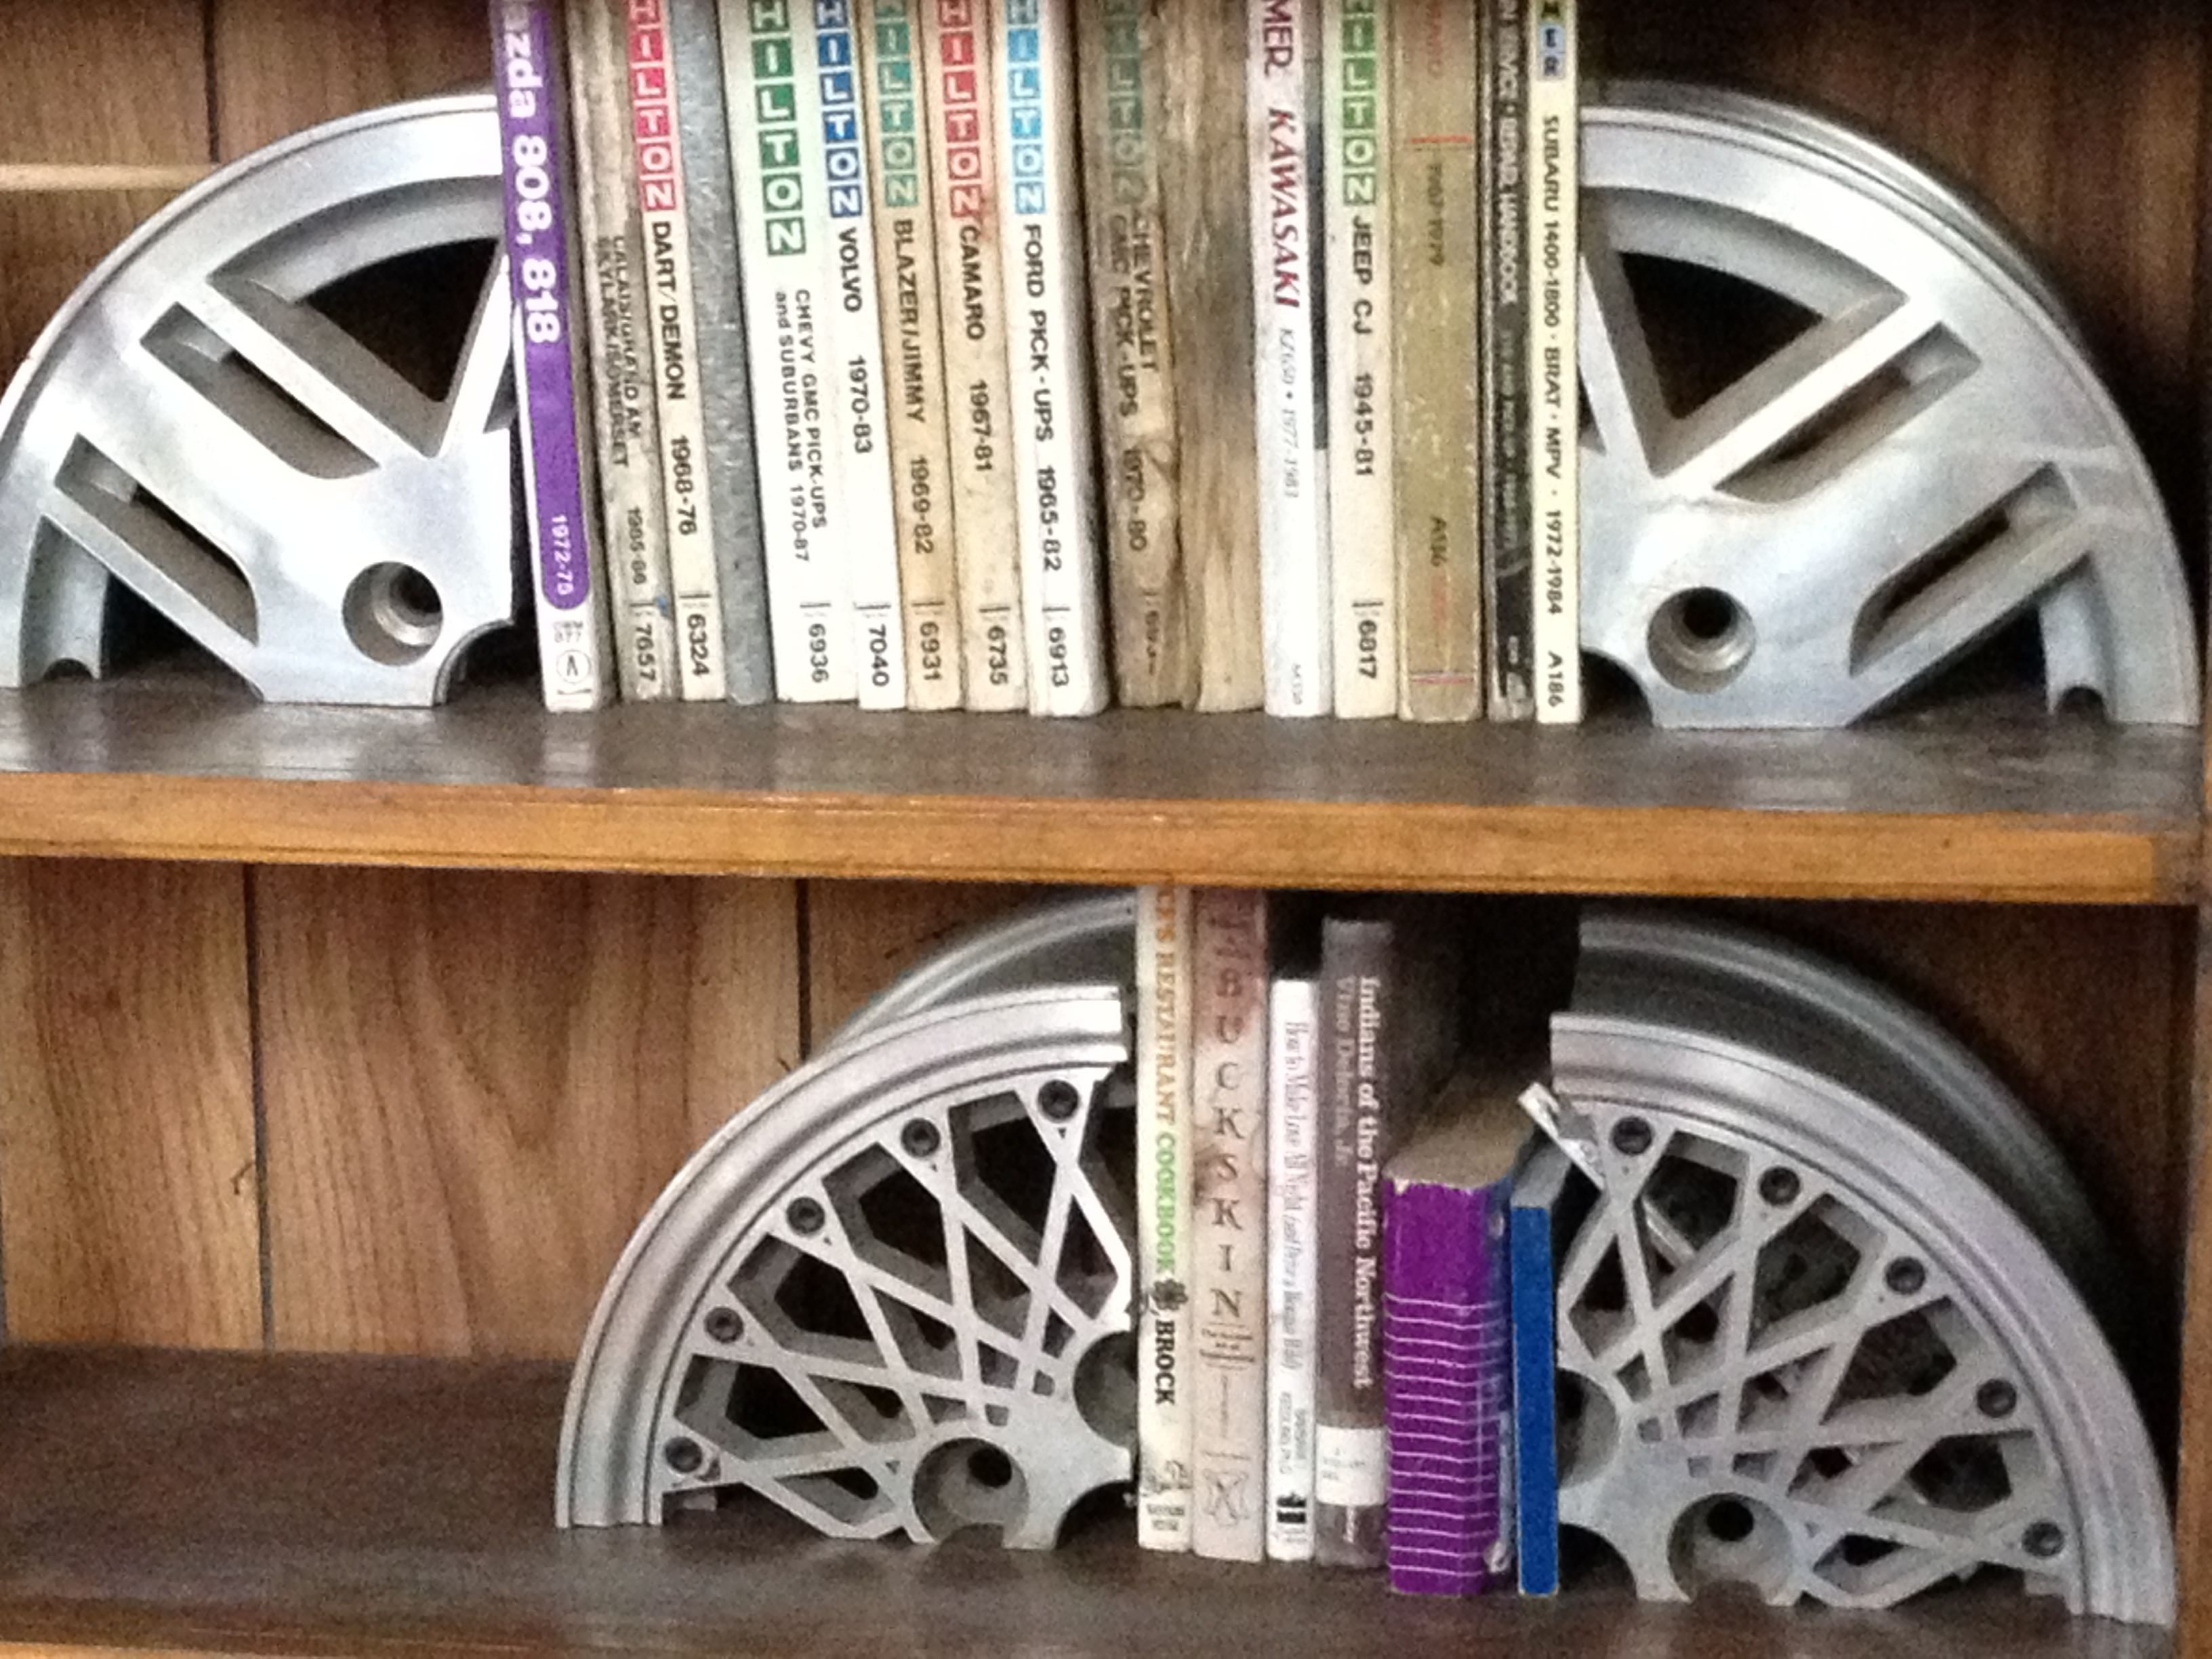 Saw this at auto shop, great idea for guys! Car Rim Bookends - Automotive Decor #upcycled #recycled